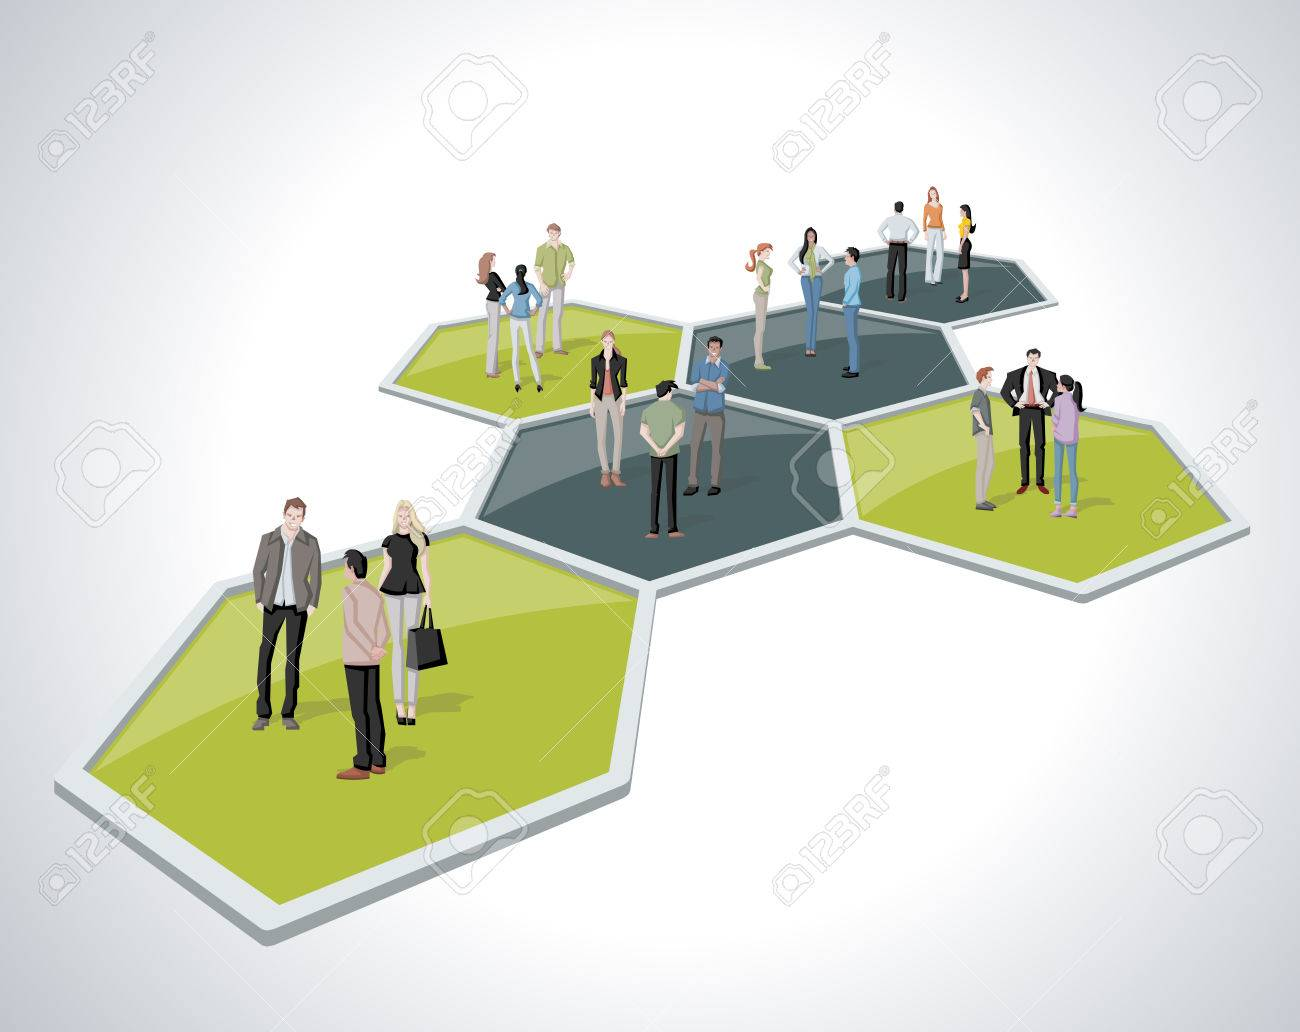 Business people connected over bee hive blocks - 58503839